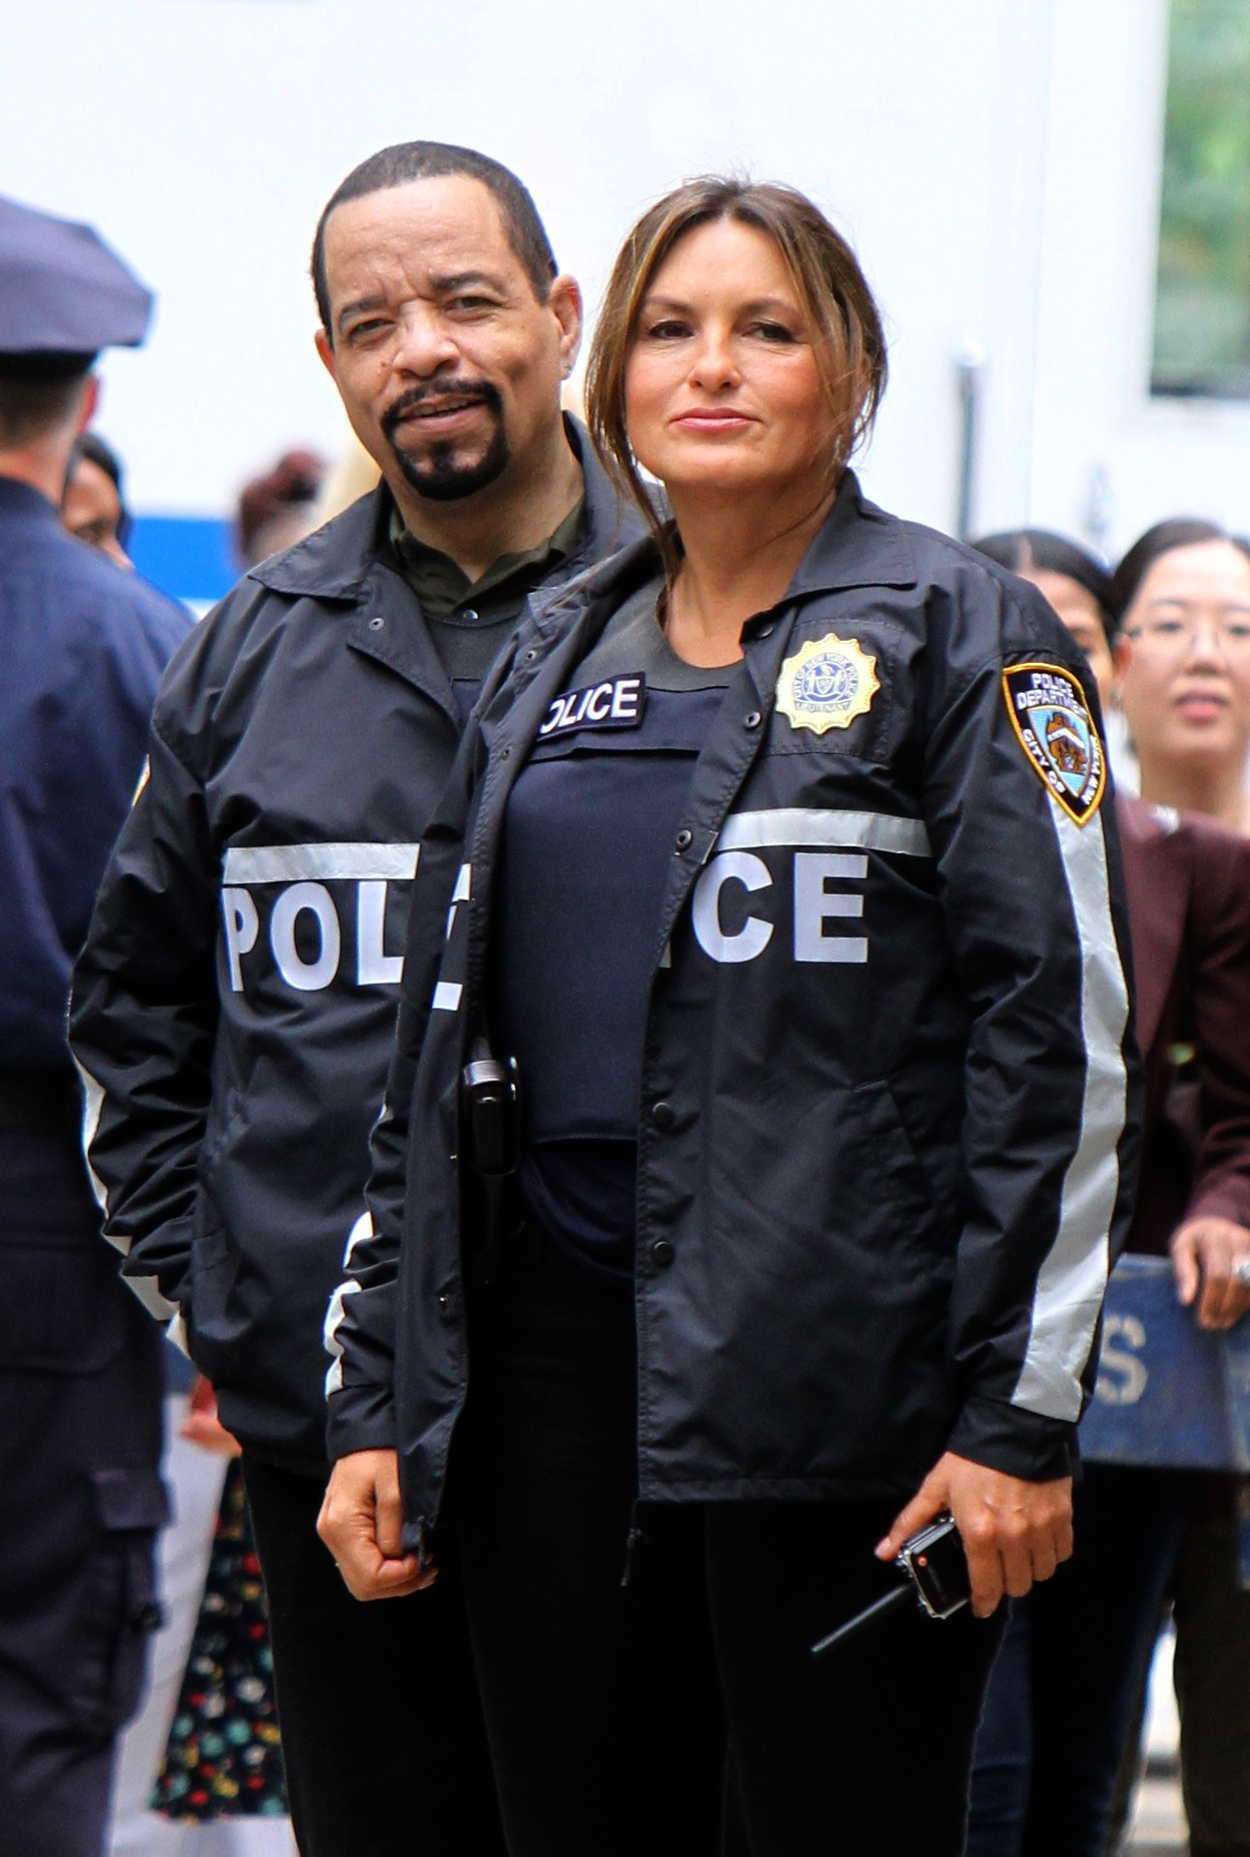 Mariska Hargitay On The Set Of Law And Order Svu In